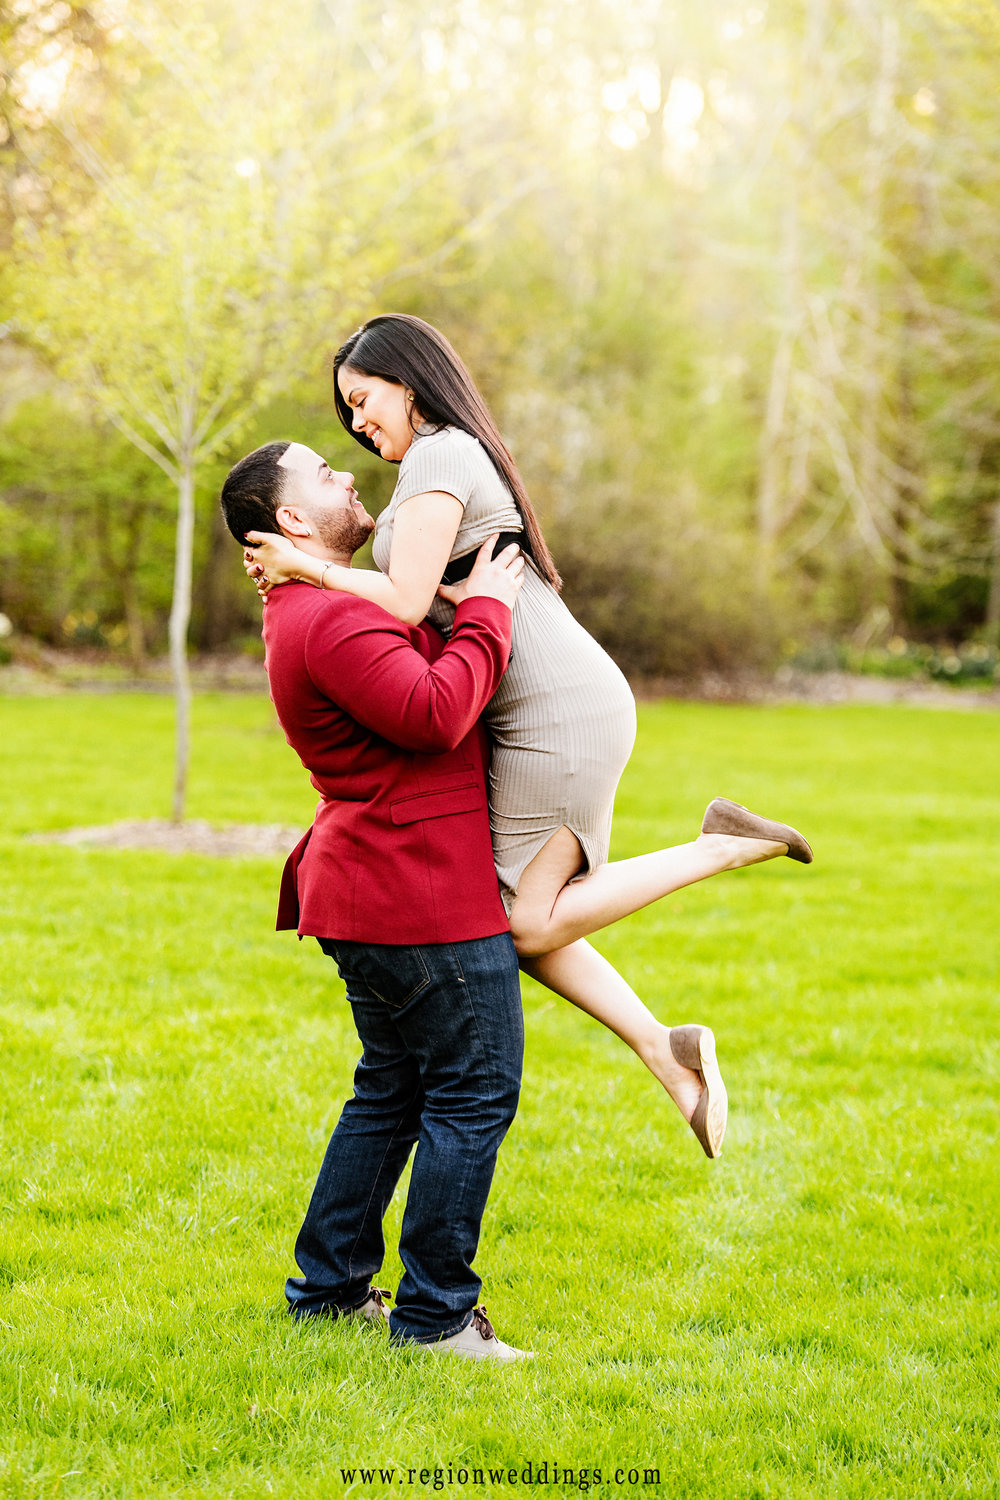 A man lifts his fiance' into the air for a romantic engagement photo.